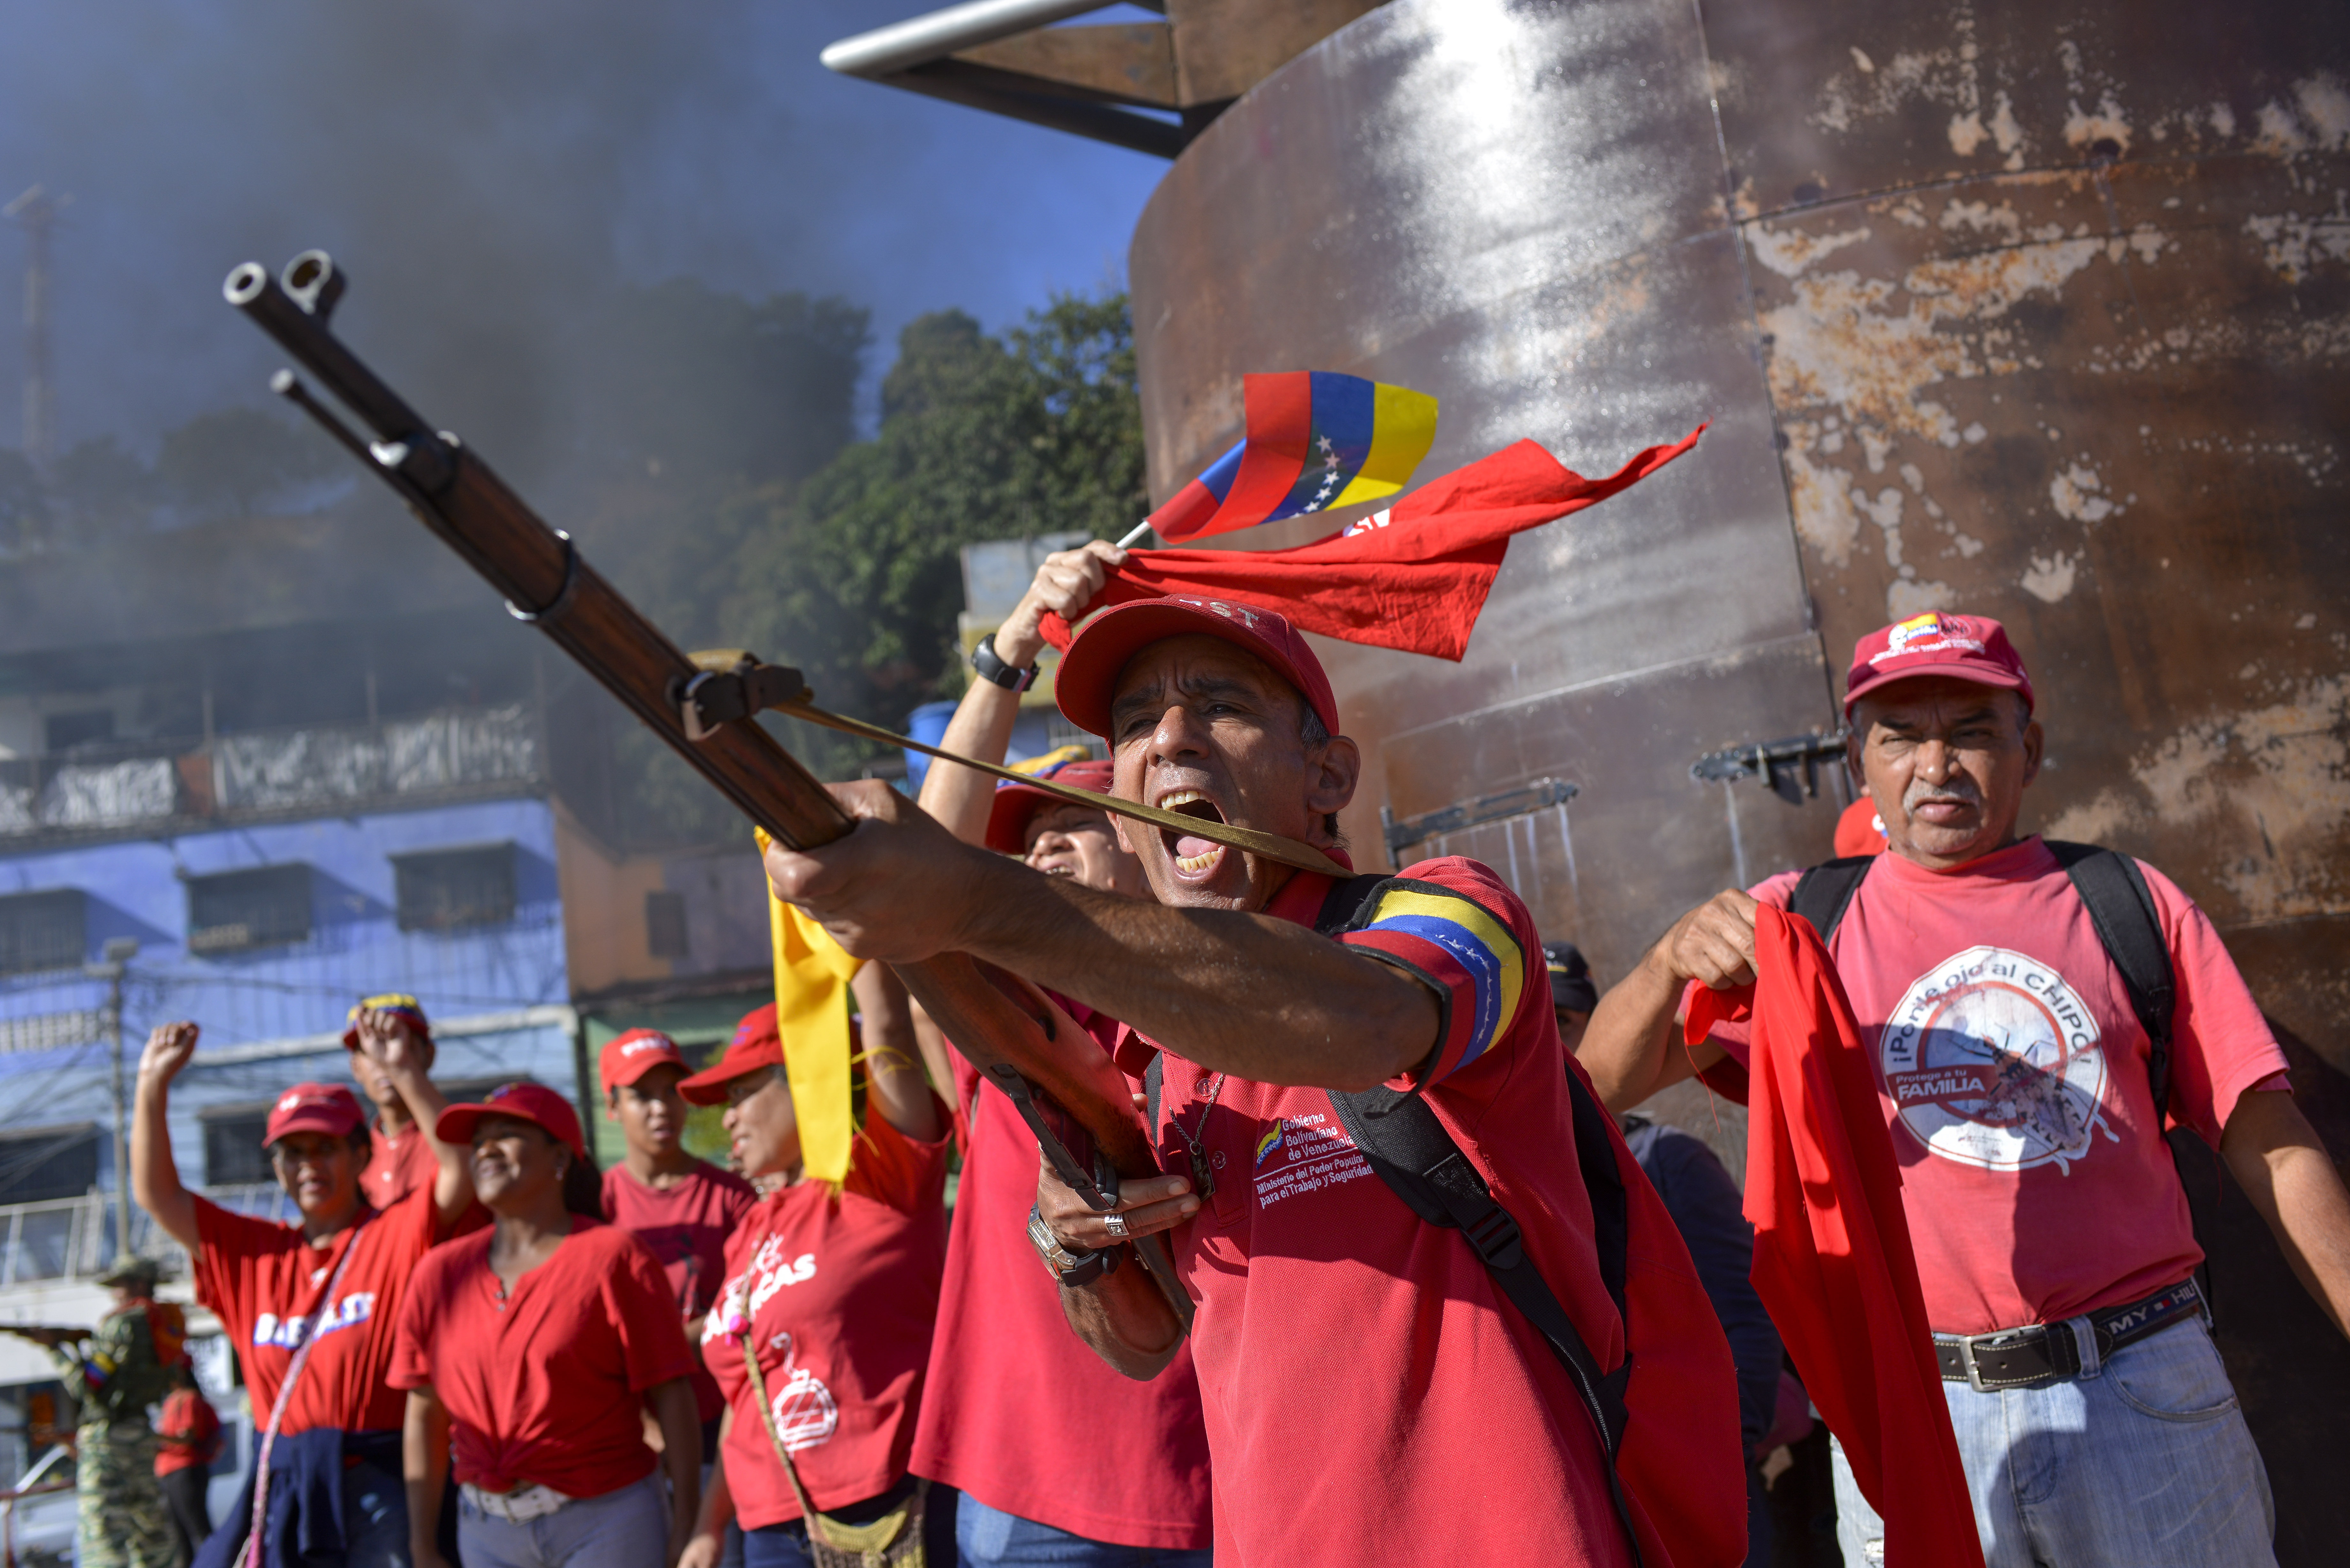 A member of the Bolivarian National Militia brandishes a rifle during an invasion drill in Caracas, Venezuela, on Feb. 15, 2020.